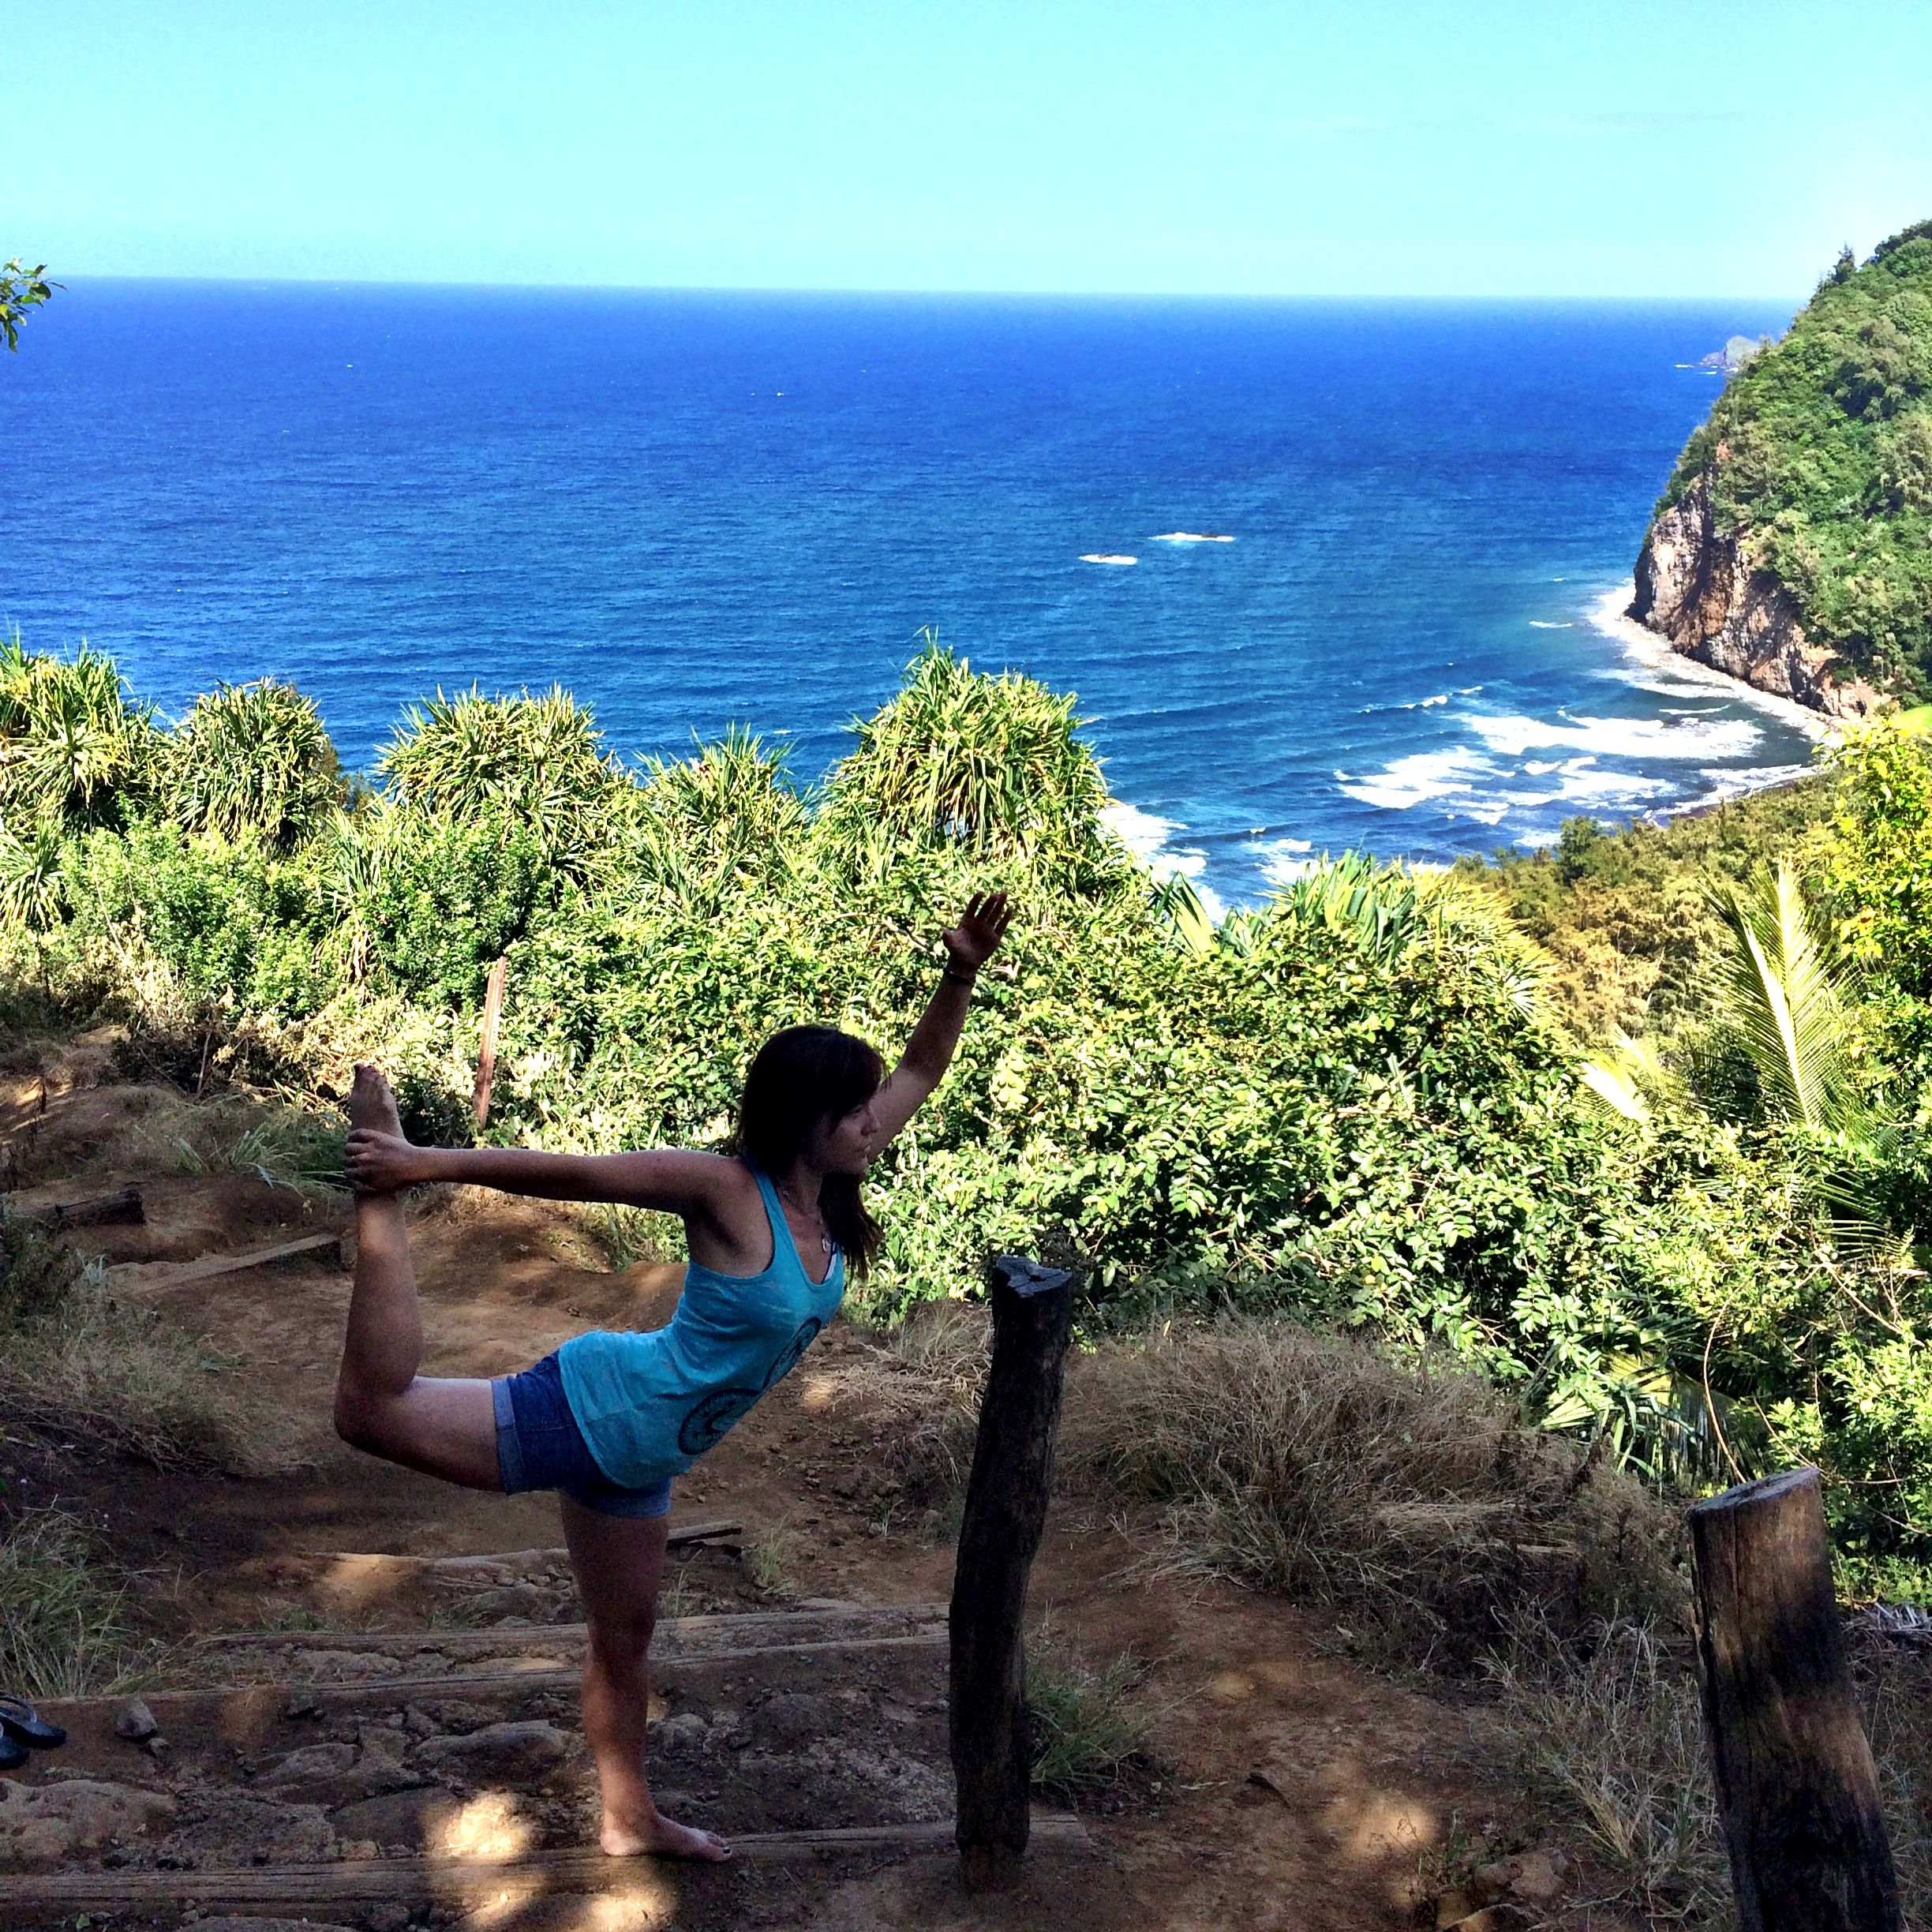 I mean, Jenn looks like she misses us terribly....right? RIGHT? But no really. We miss you, Jenn...even though we're insanely jealous of you getting your Bar on in paradise. #paradise #hawaii #vacayworkout #whataview #barmethod